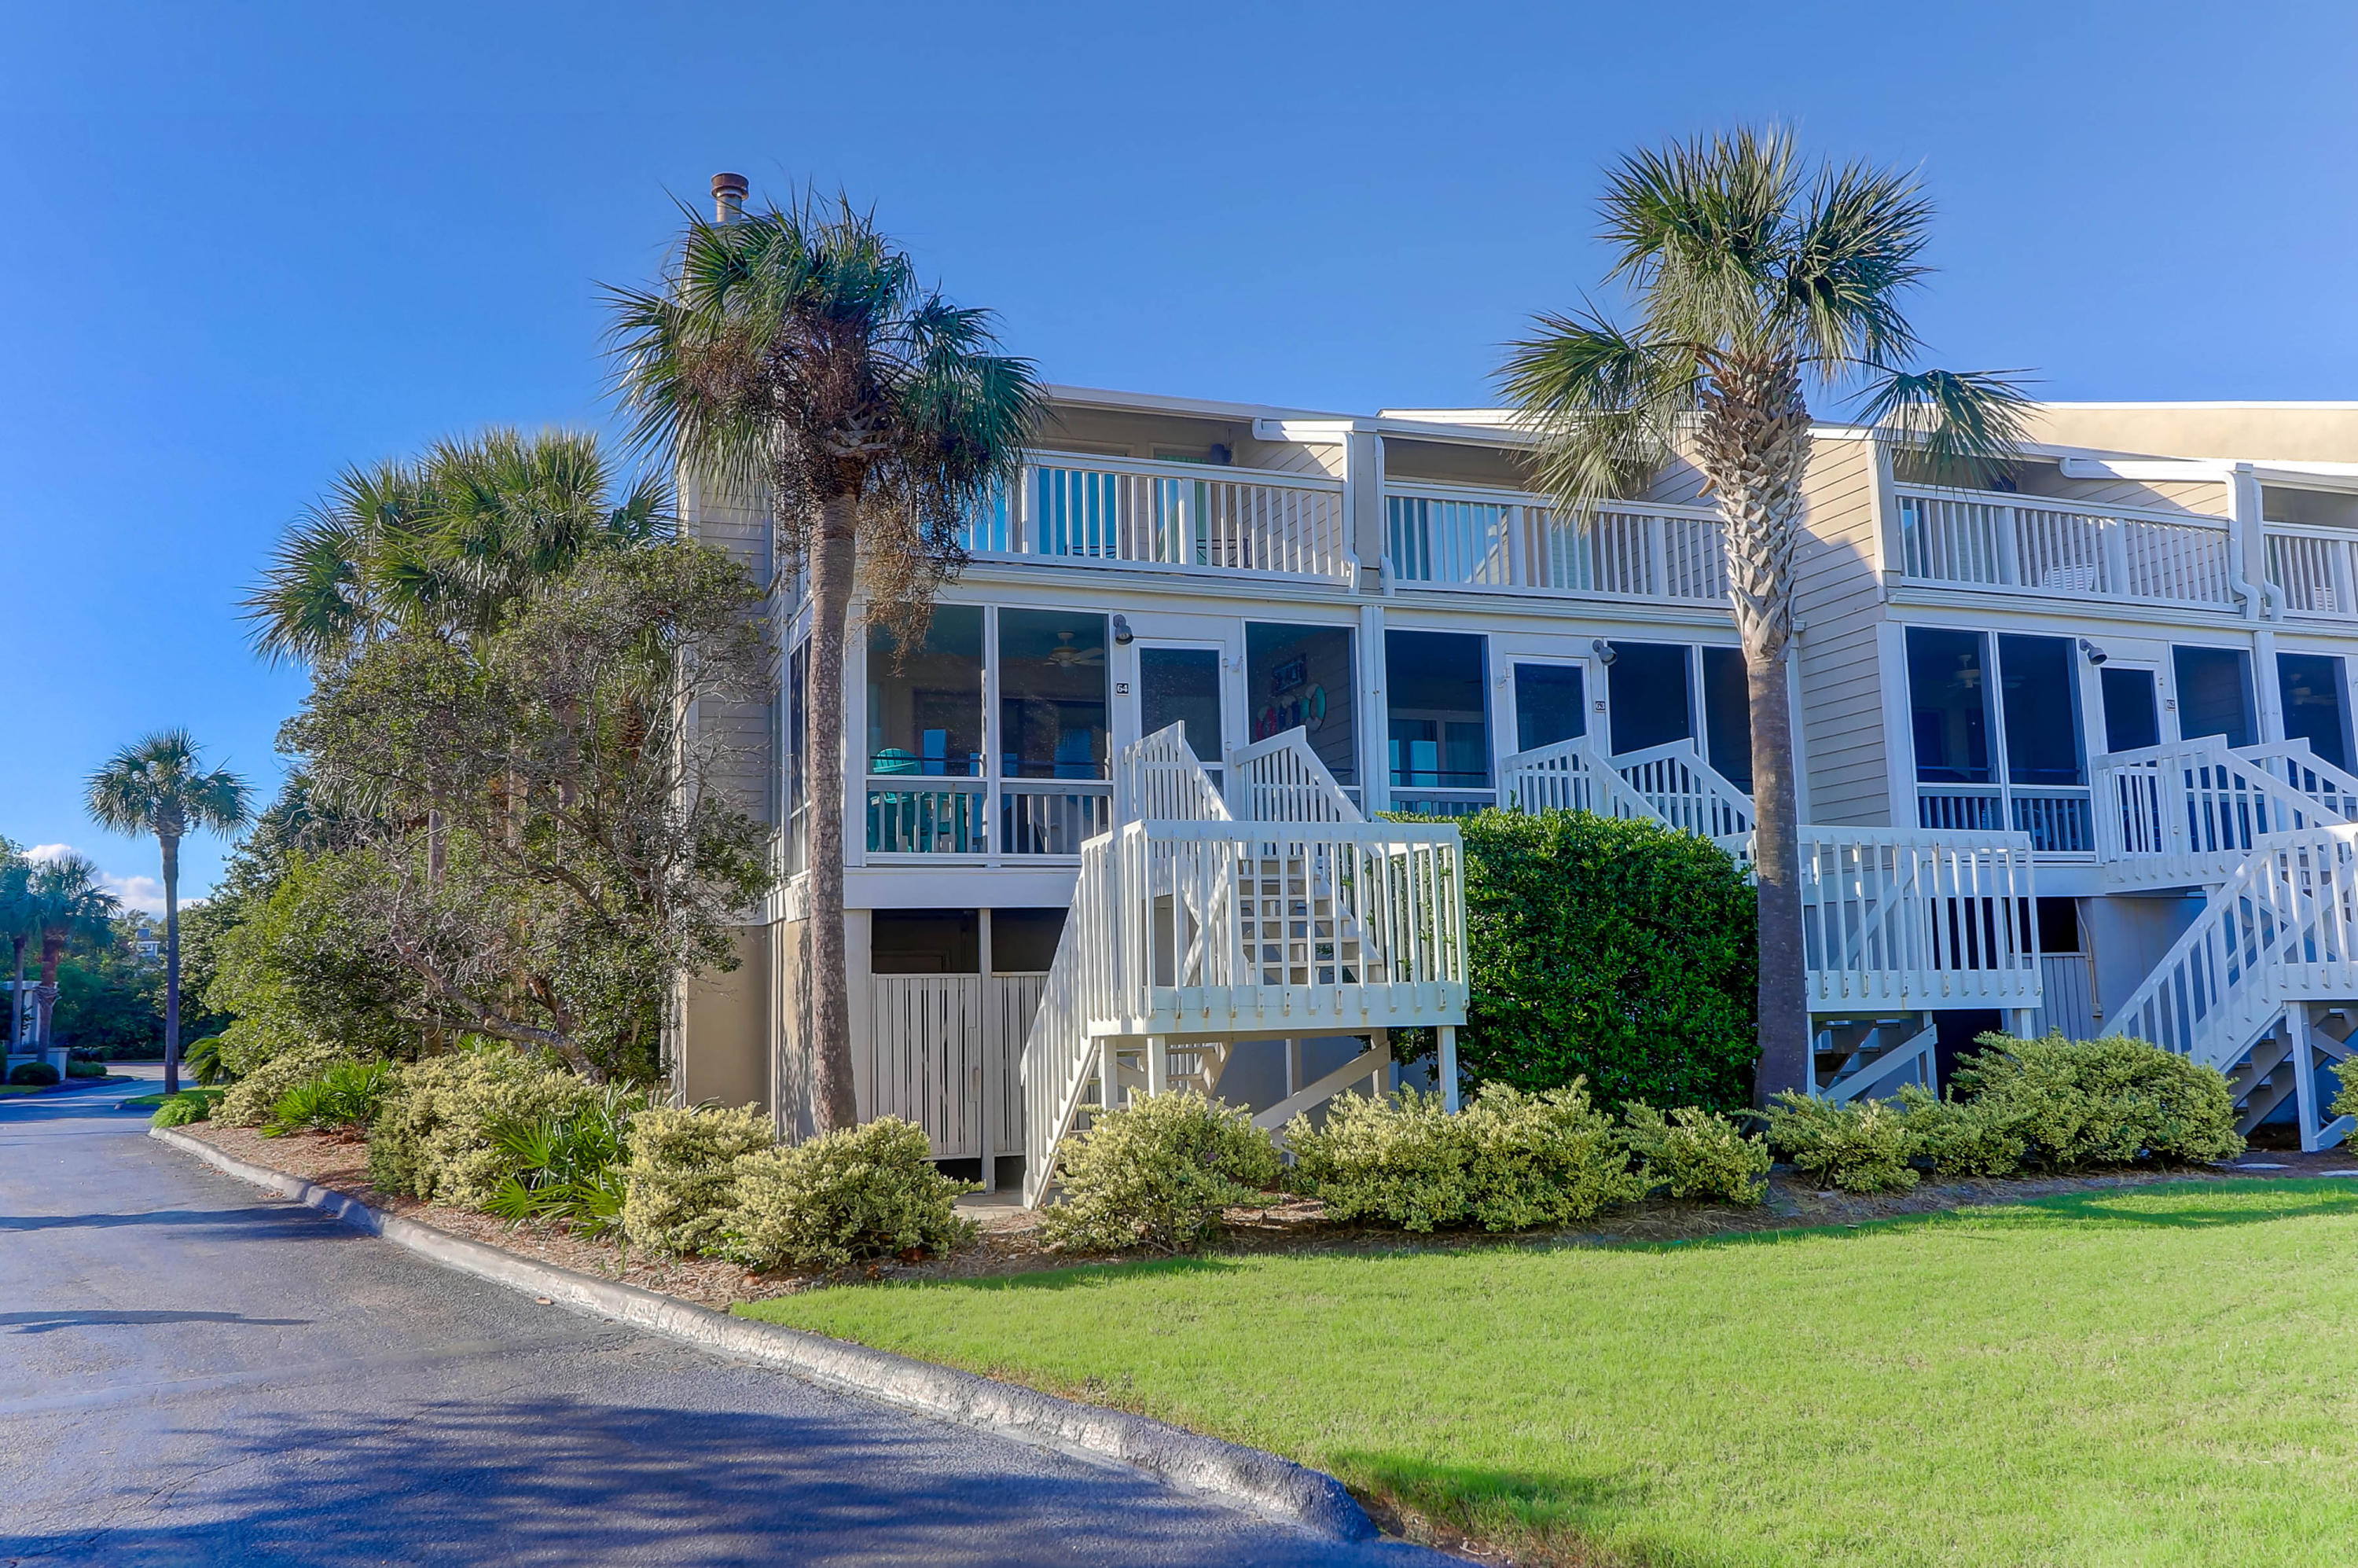 64 Beach Club Isle Of Palms, SC 29451